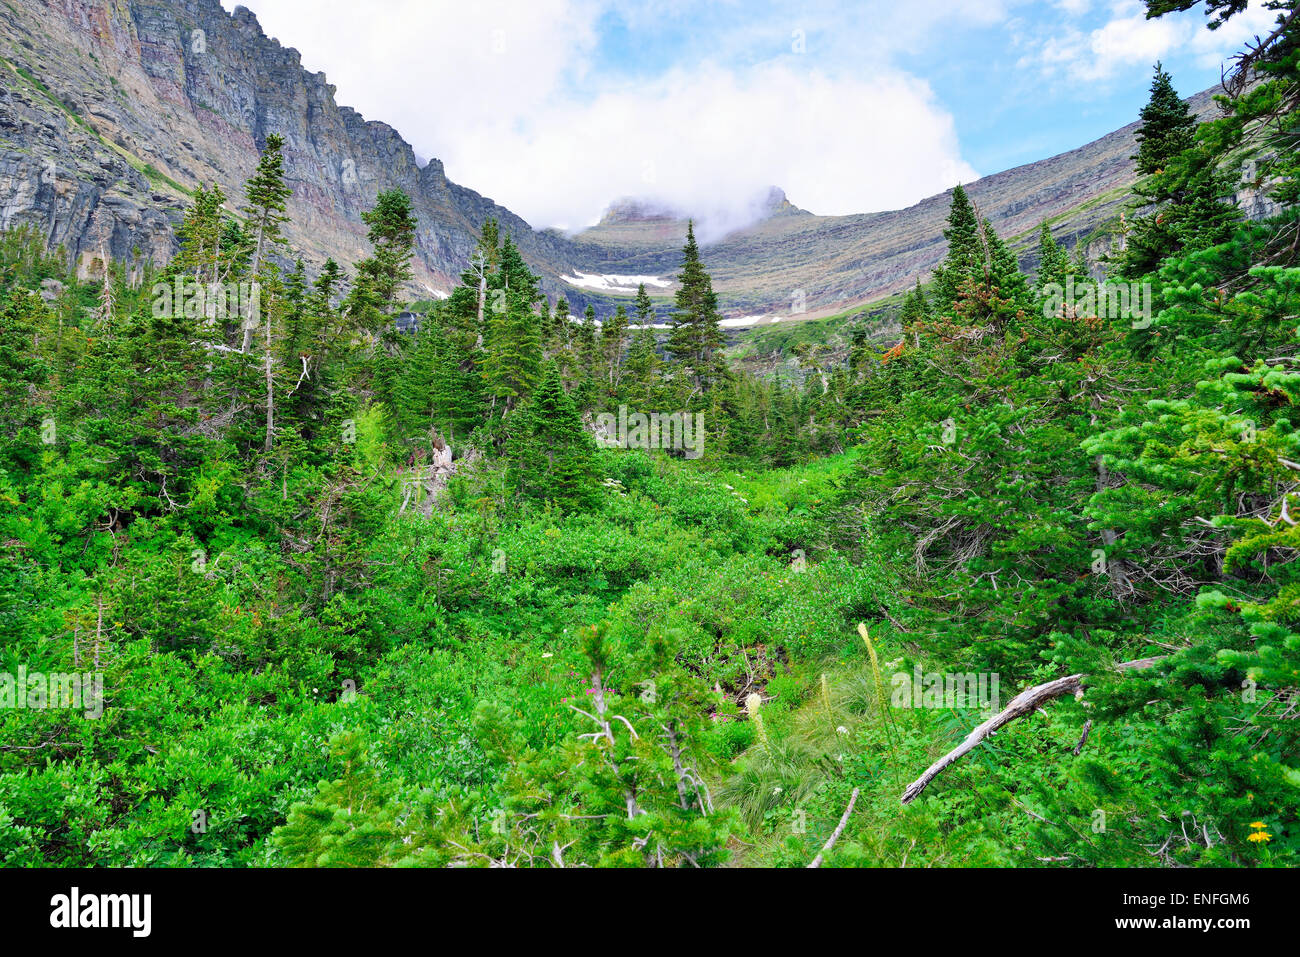 mountains and high alpine conifer forest in glacier national park in summer - Stock Image